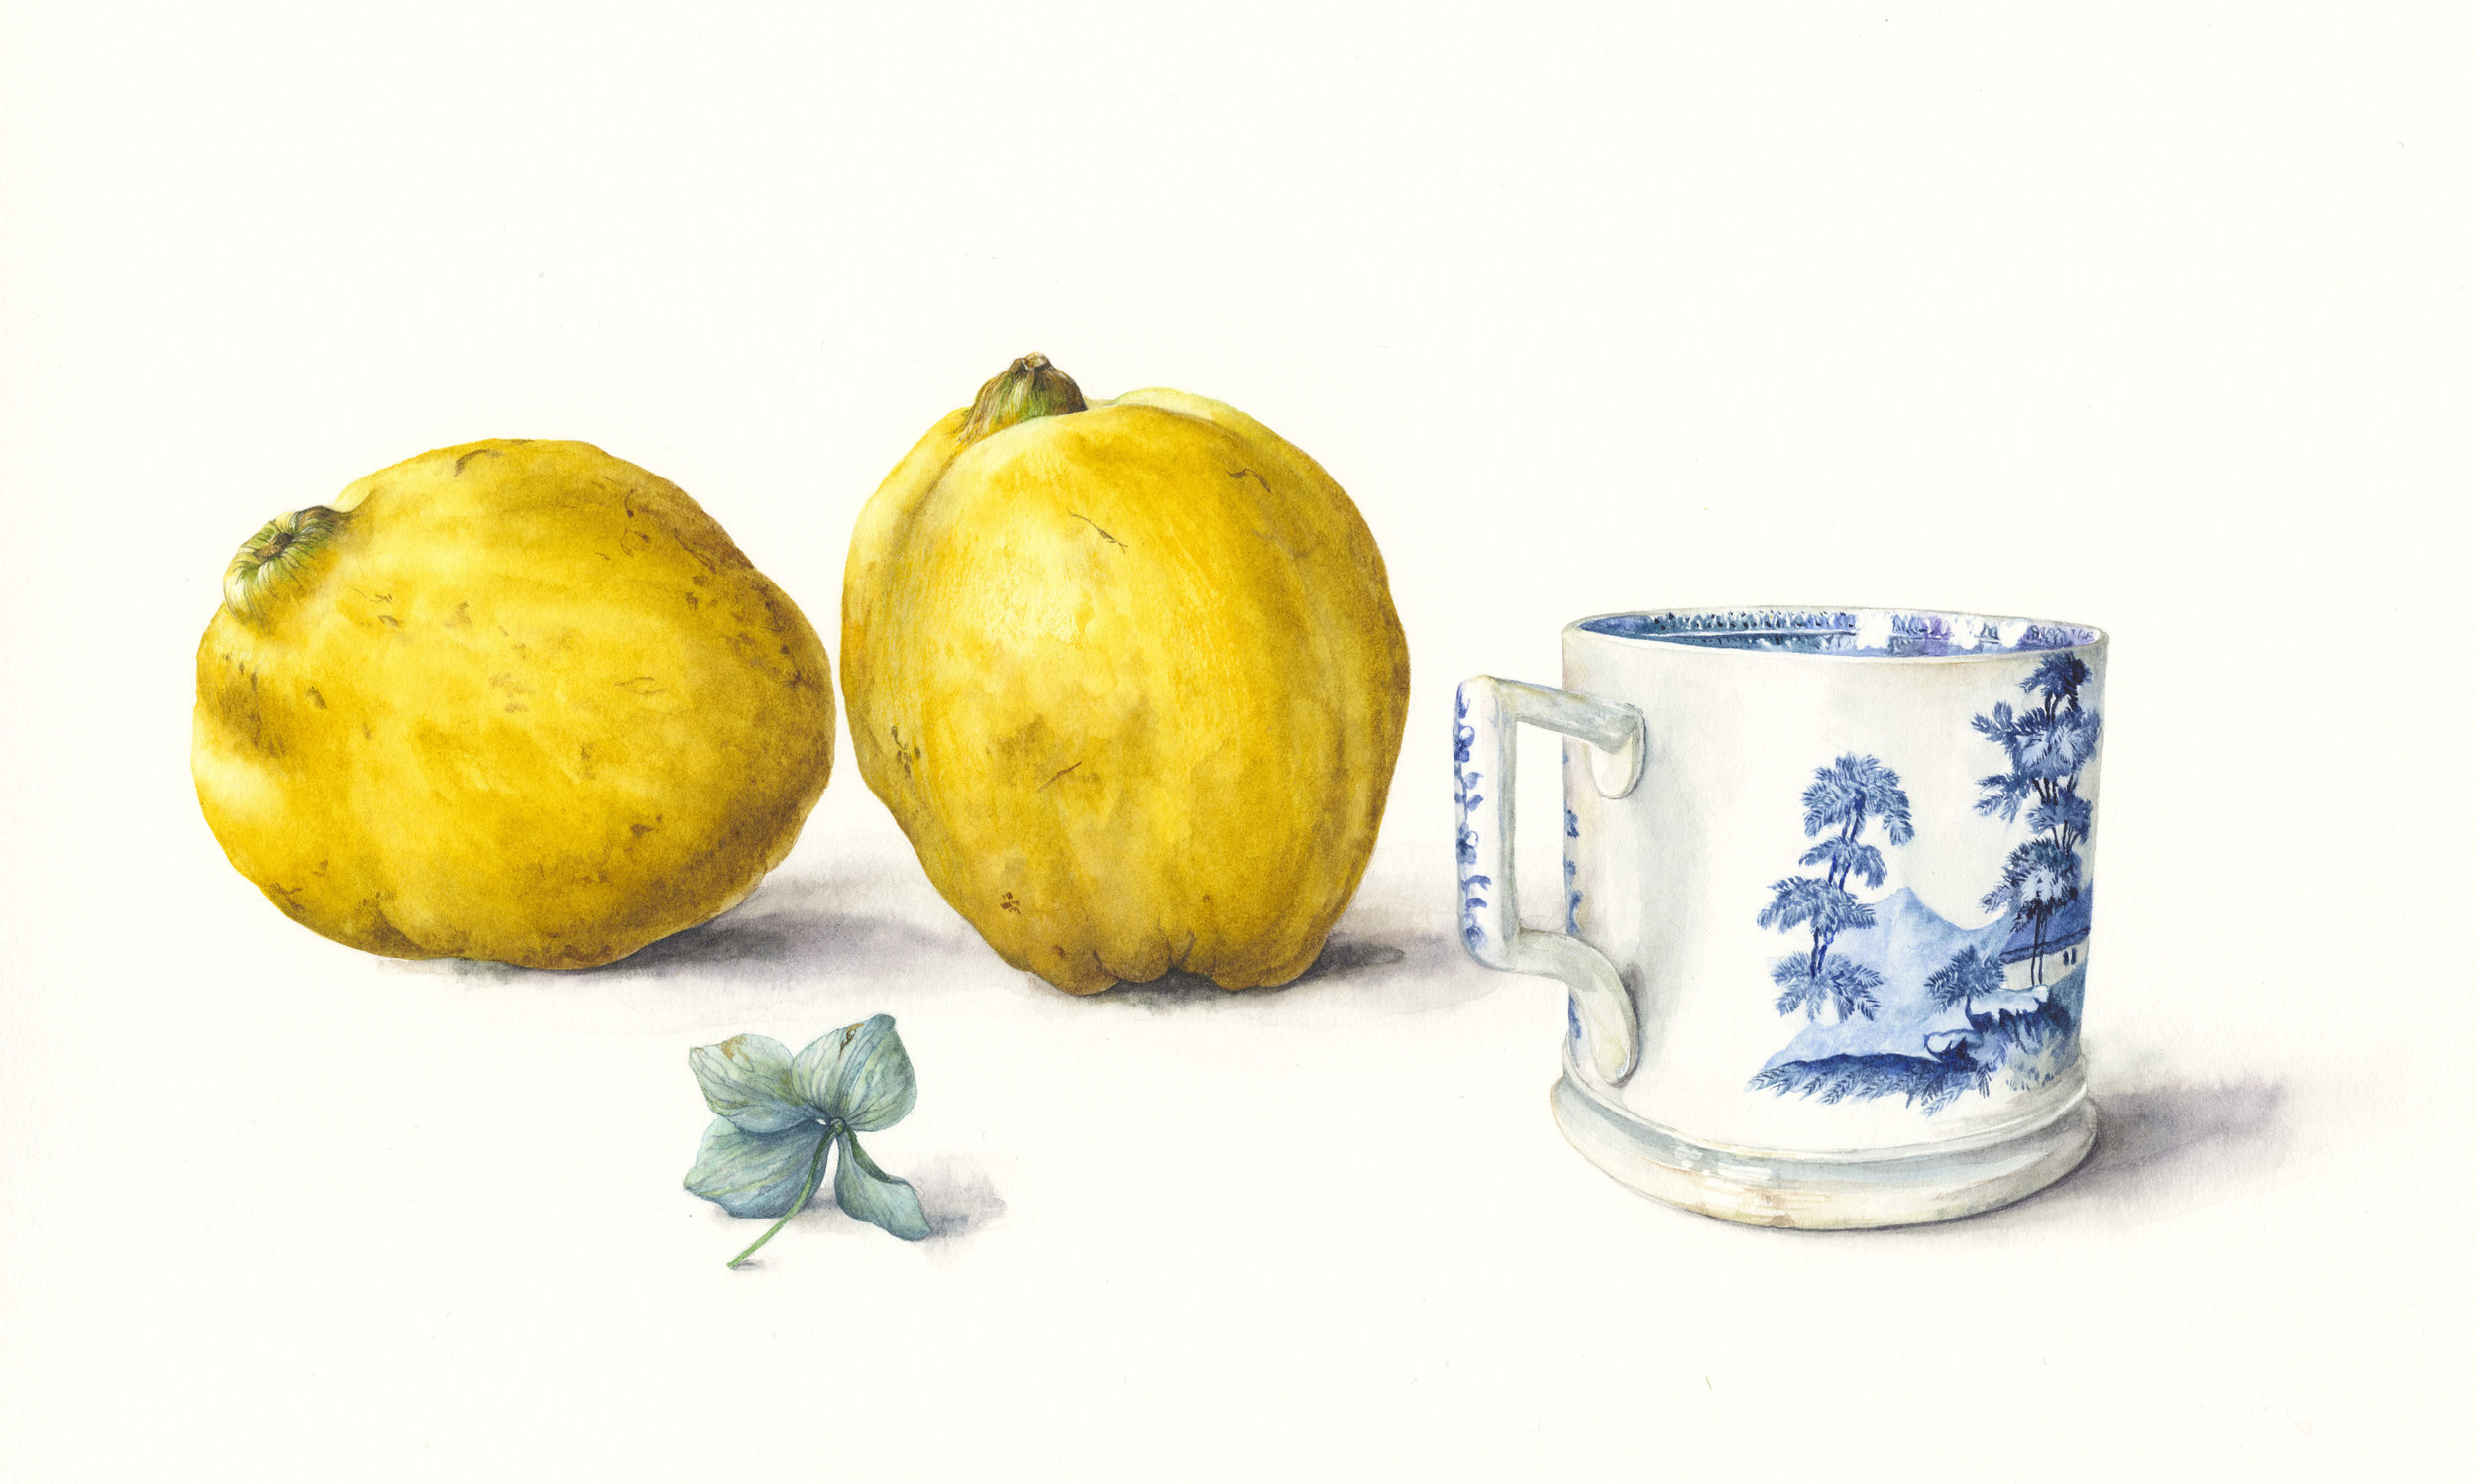 Willow Pattern Cup and Quinces  watercolour on paper  38 x 22 cm image  61 x 45 cm framed  sold